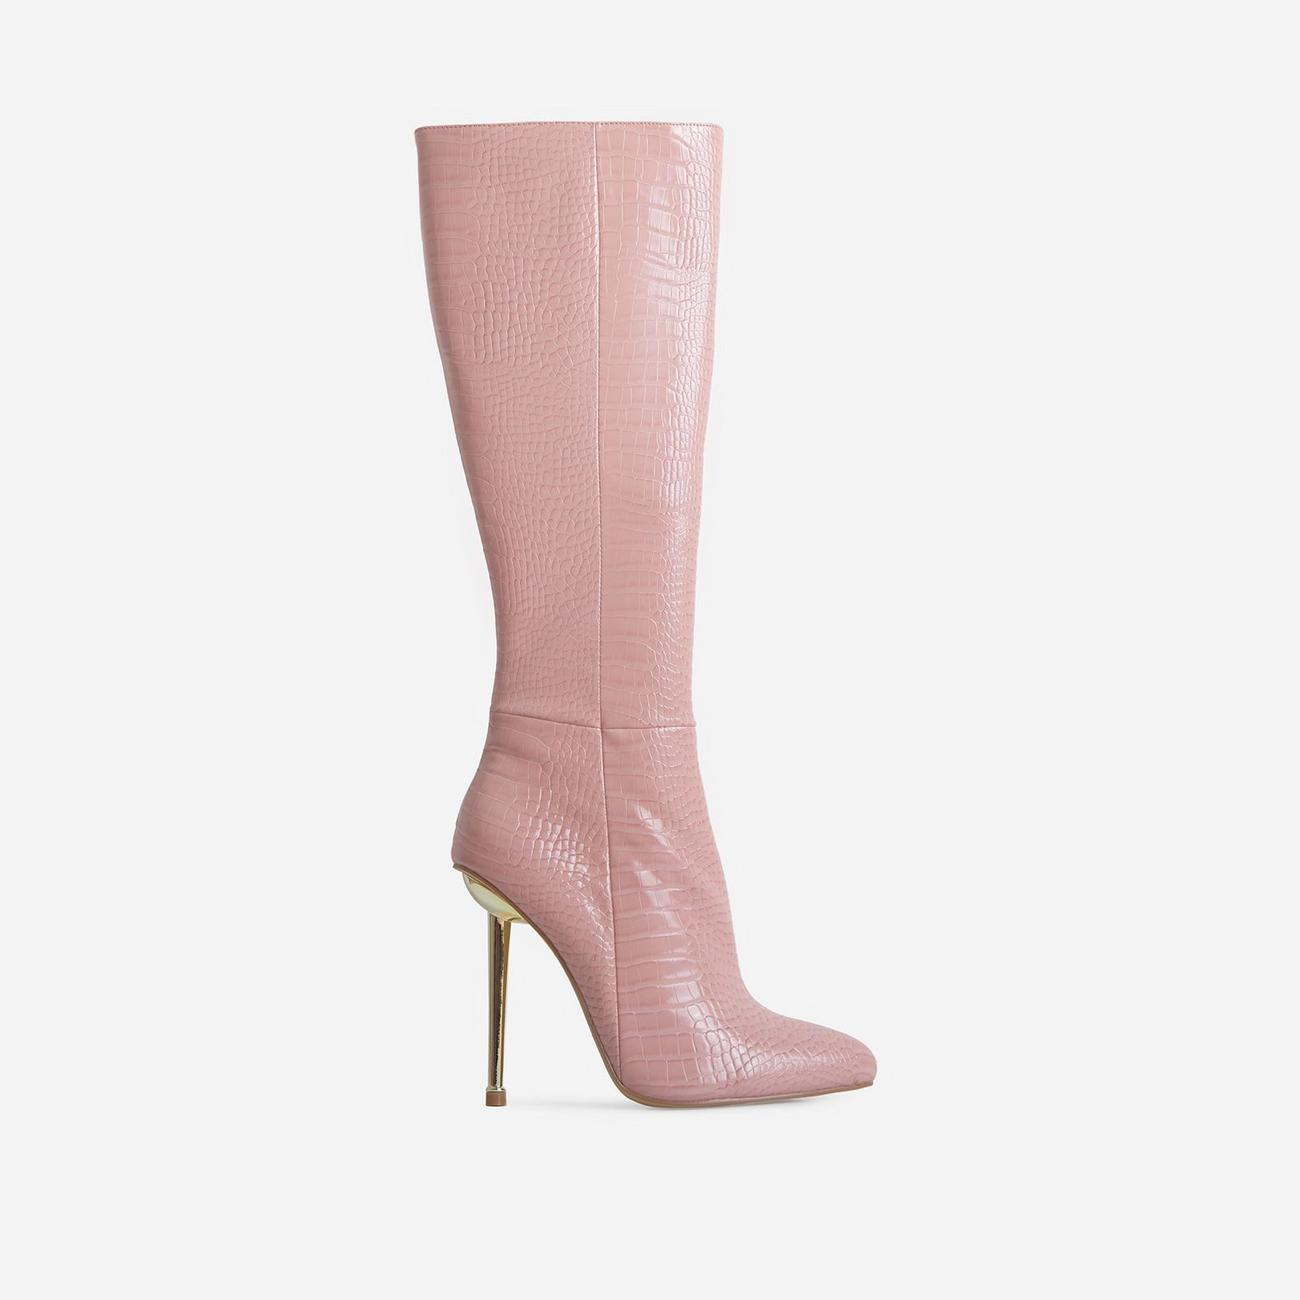 Clarity Metallic Heel Knee High Long Boots In Pink Croc Print Faux Leather Image 1